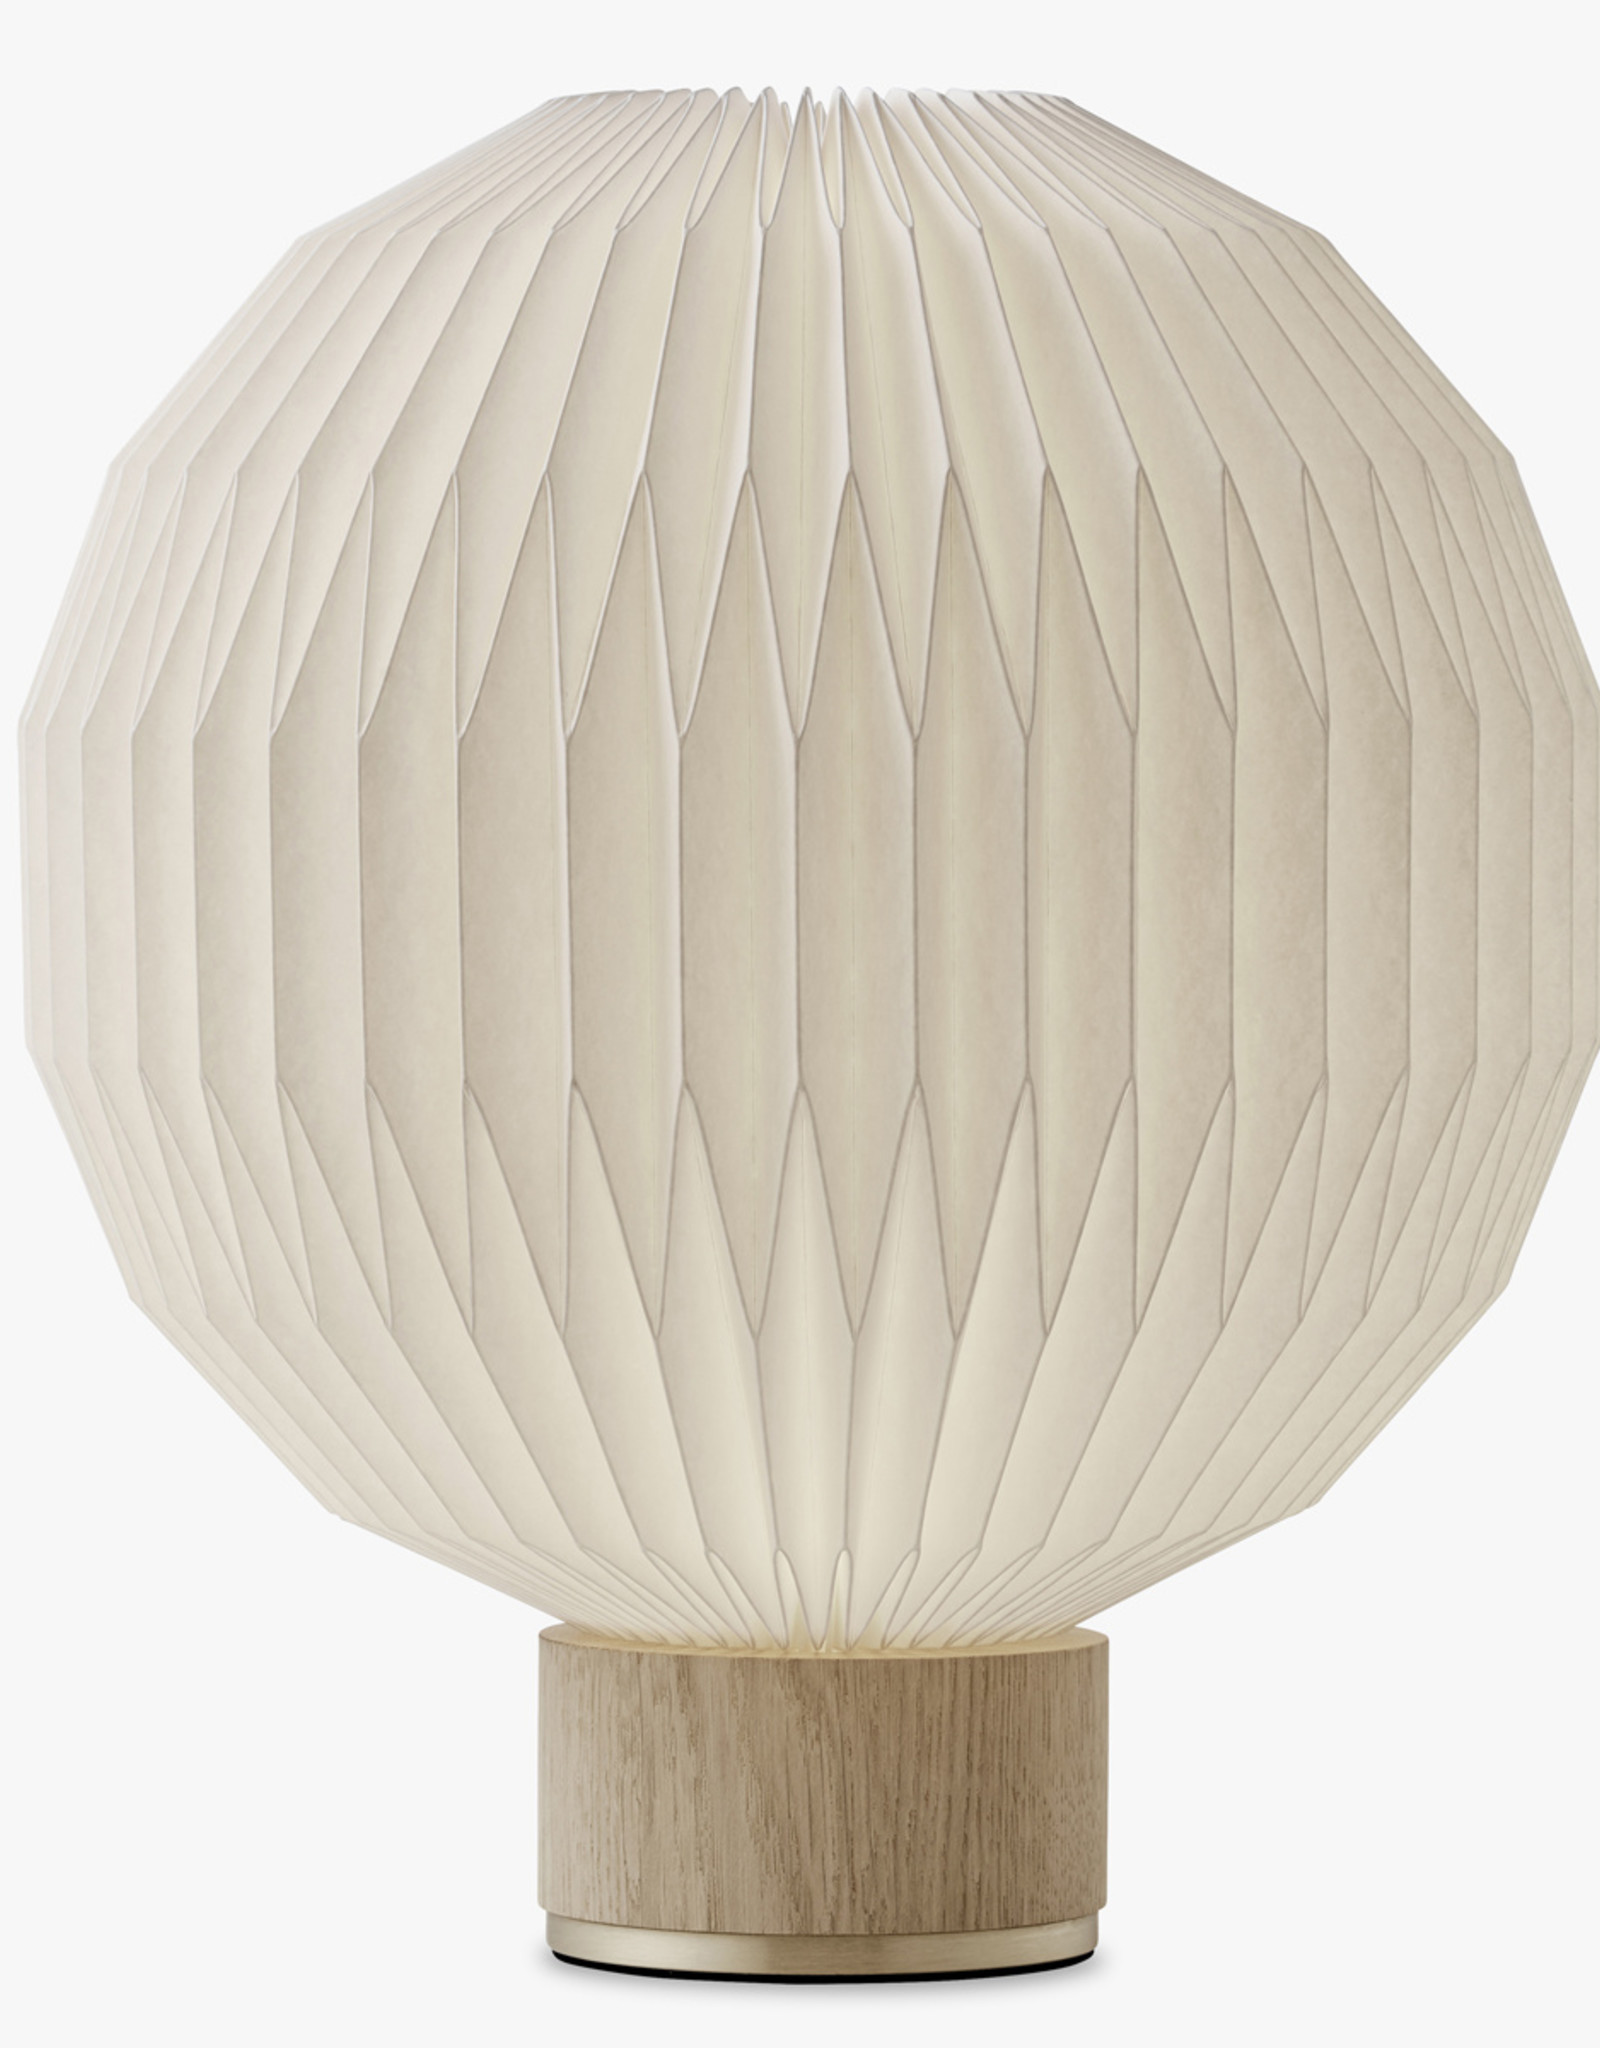 Model 375 table light by Esben Klint | M | Paper